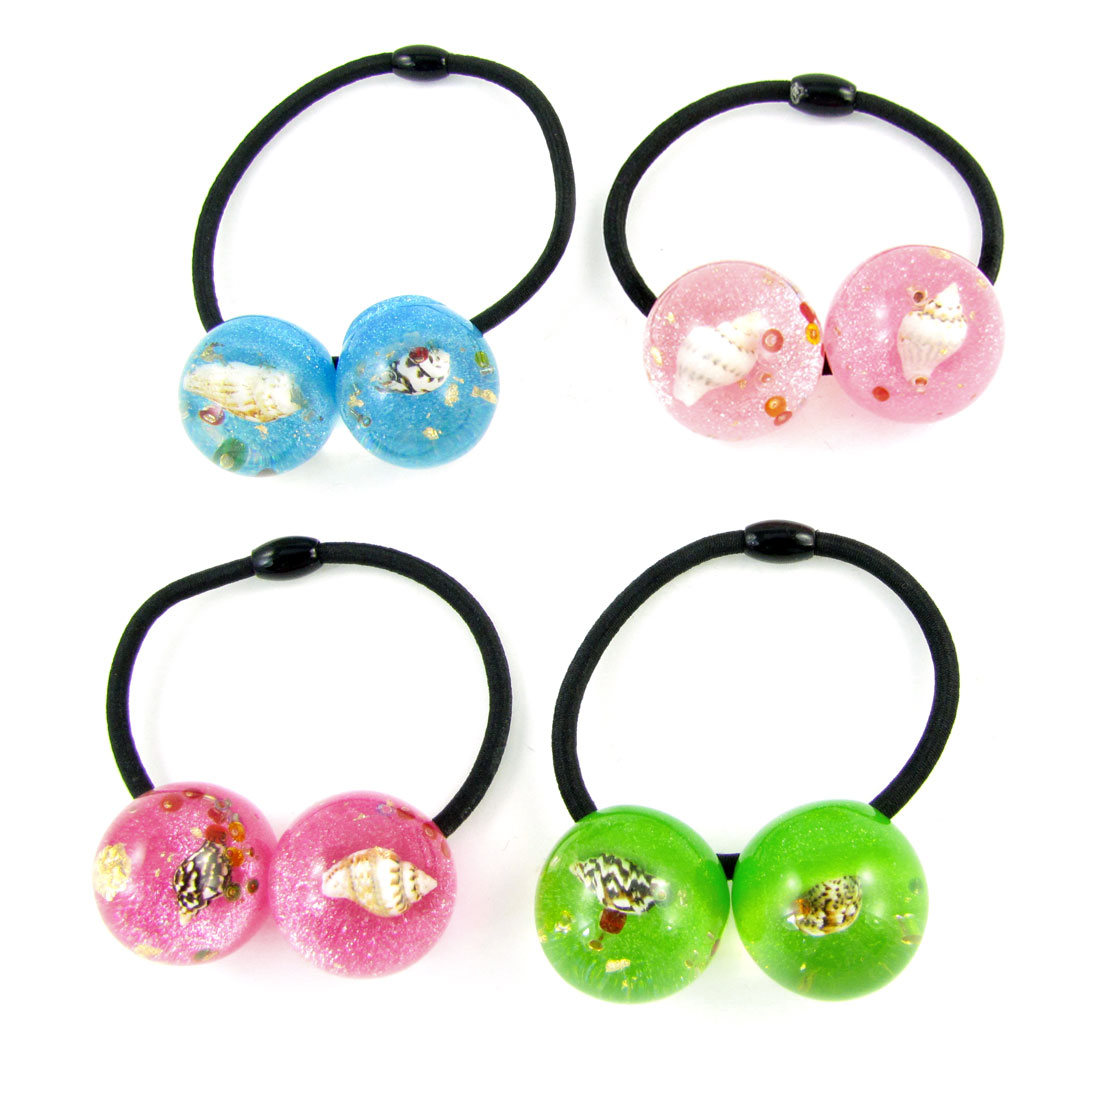 4pcs Girl Shell Inlaid Assorted Color Beads Decor Elastic Hair Band Tie